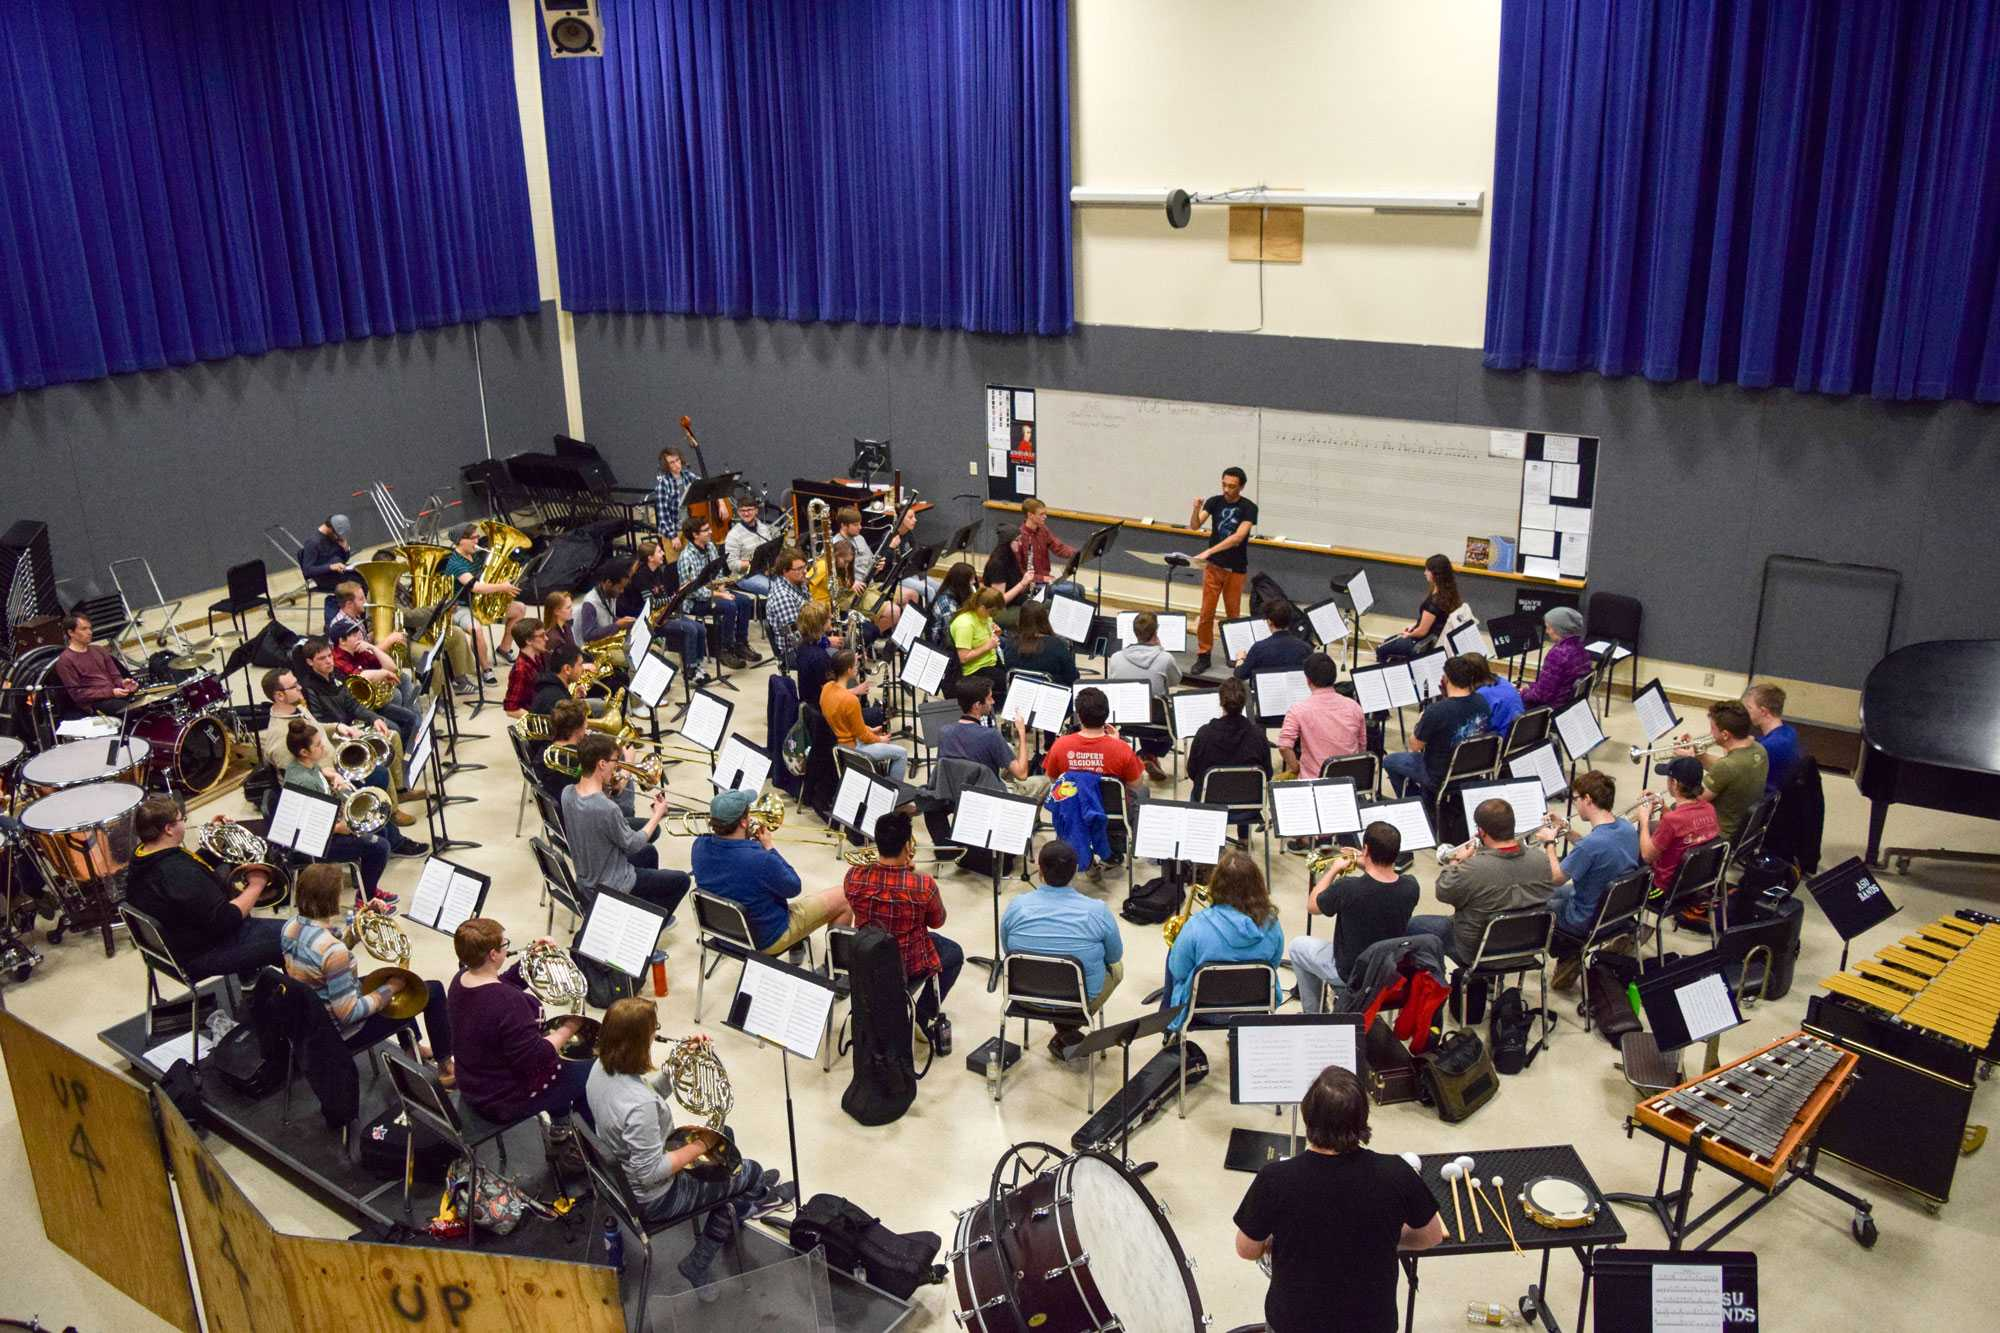 Student-run, ensemble plays tunes from video games